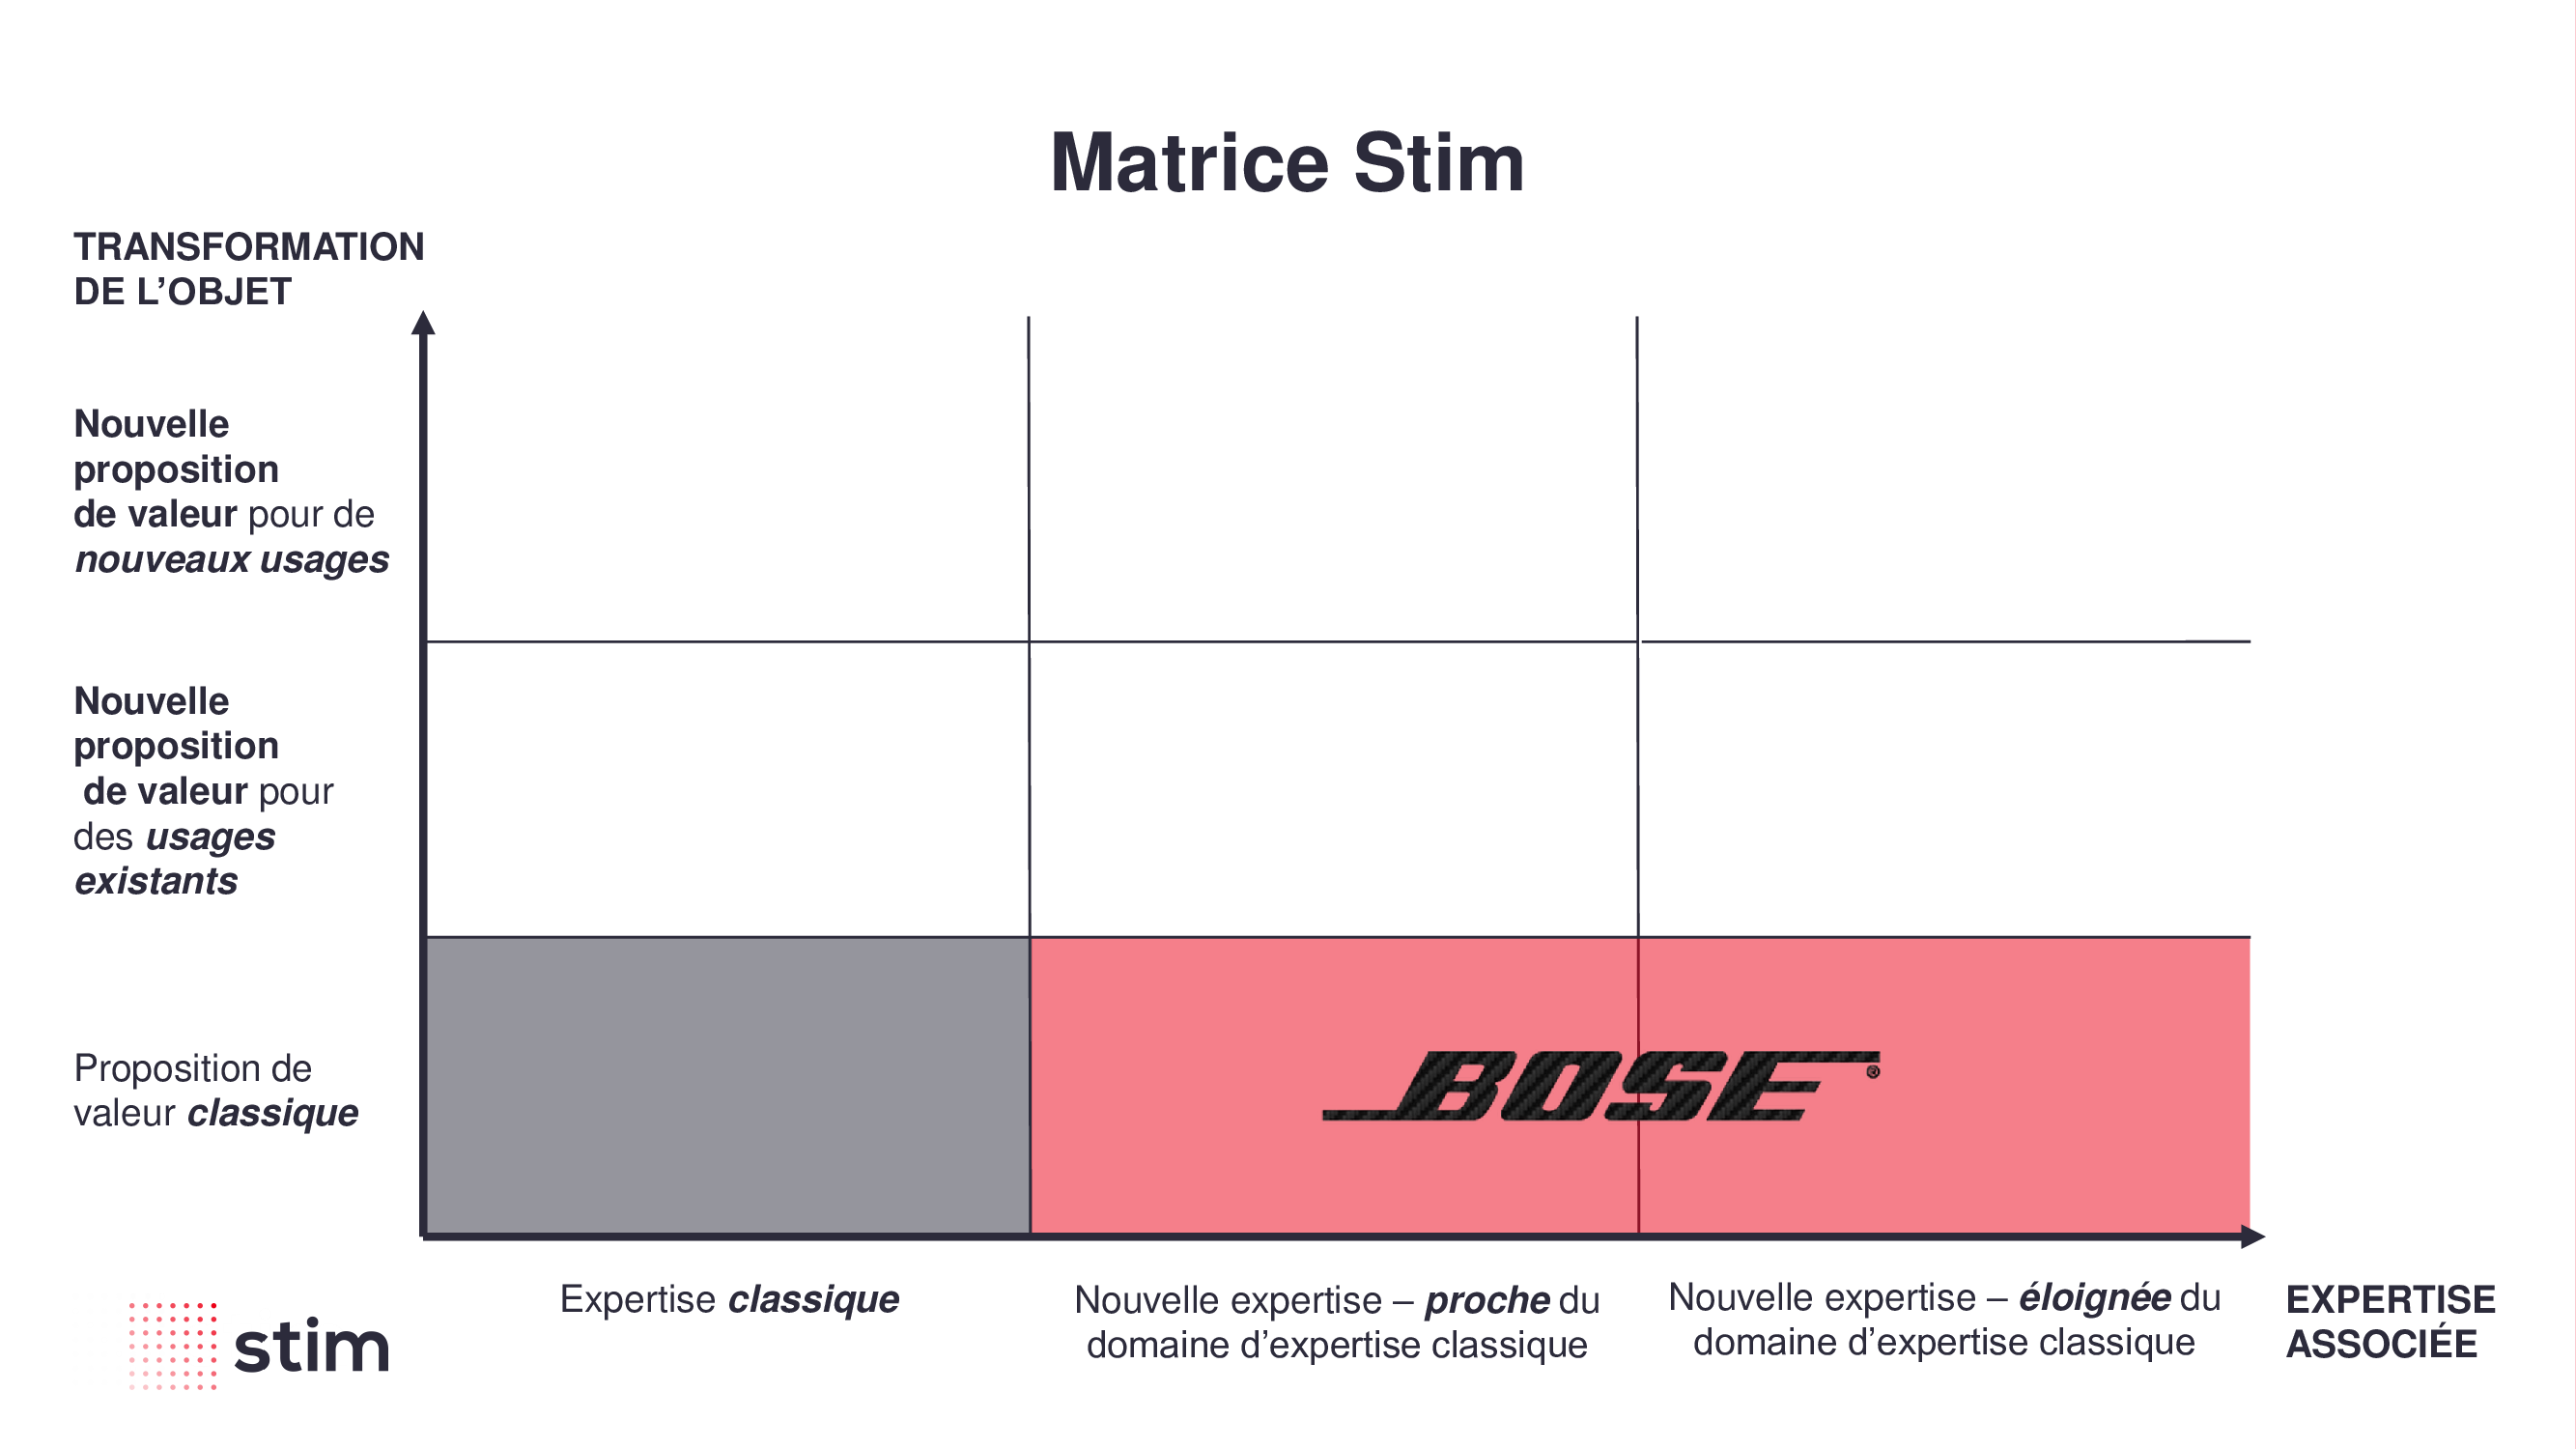 stratégie d'innovation, matrice, innovation, bose, effort, expertise, transformation